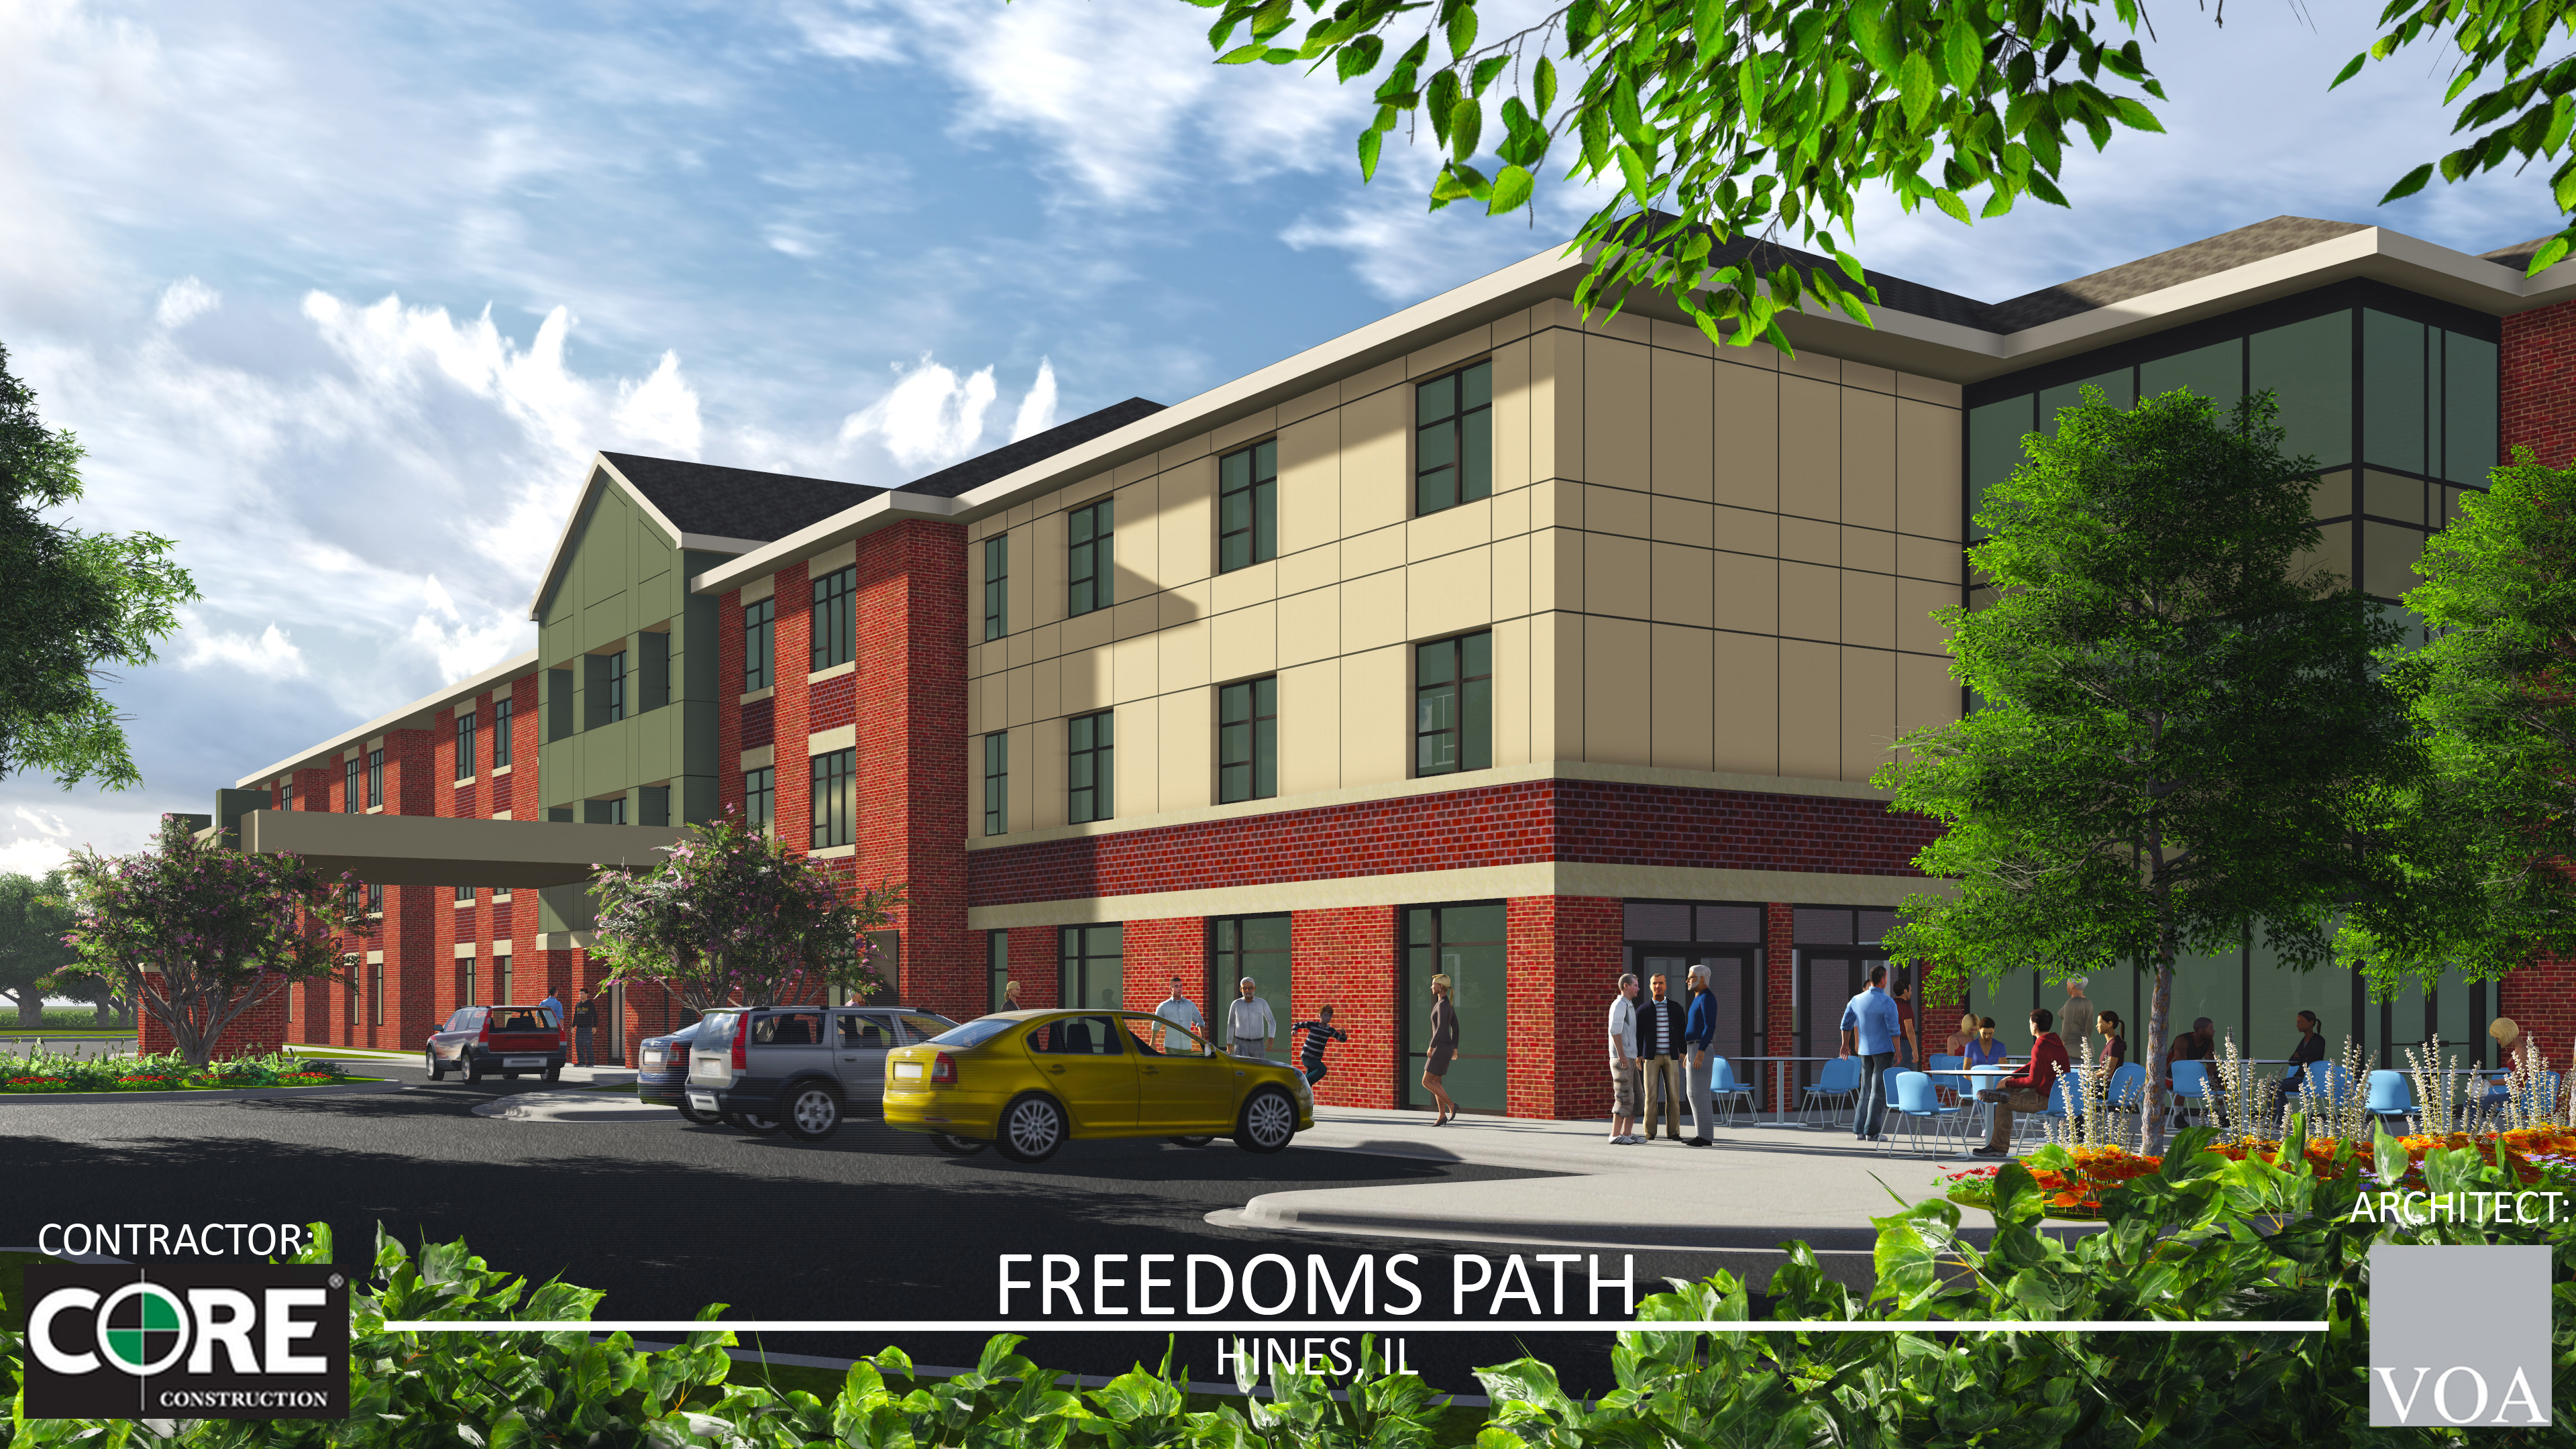 Freedoms Path Hines rendering